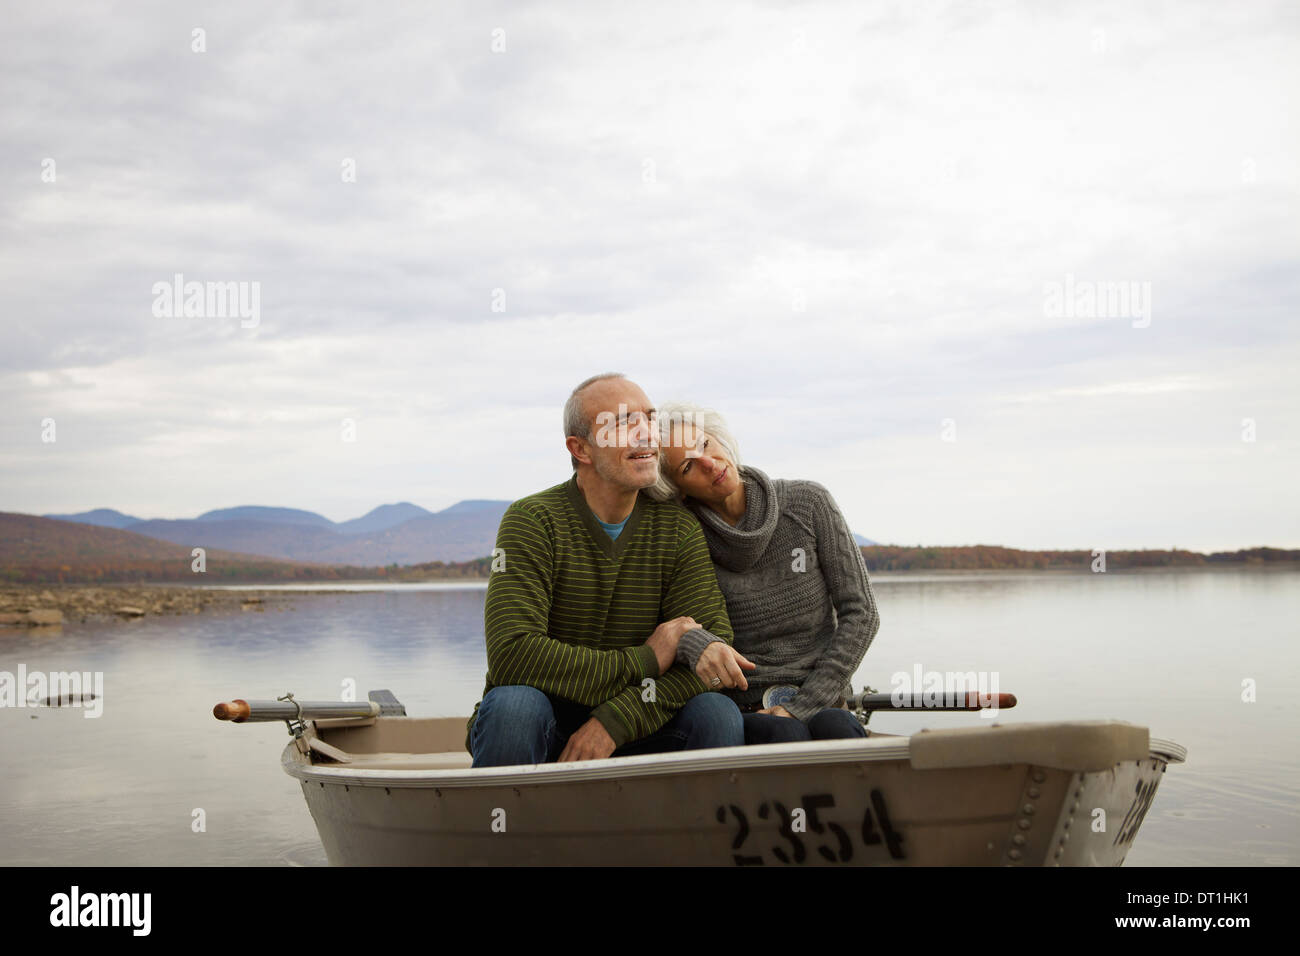 A couple man and woman sitting in a rowing boat on the water on an autumn day - Stock Image